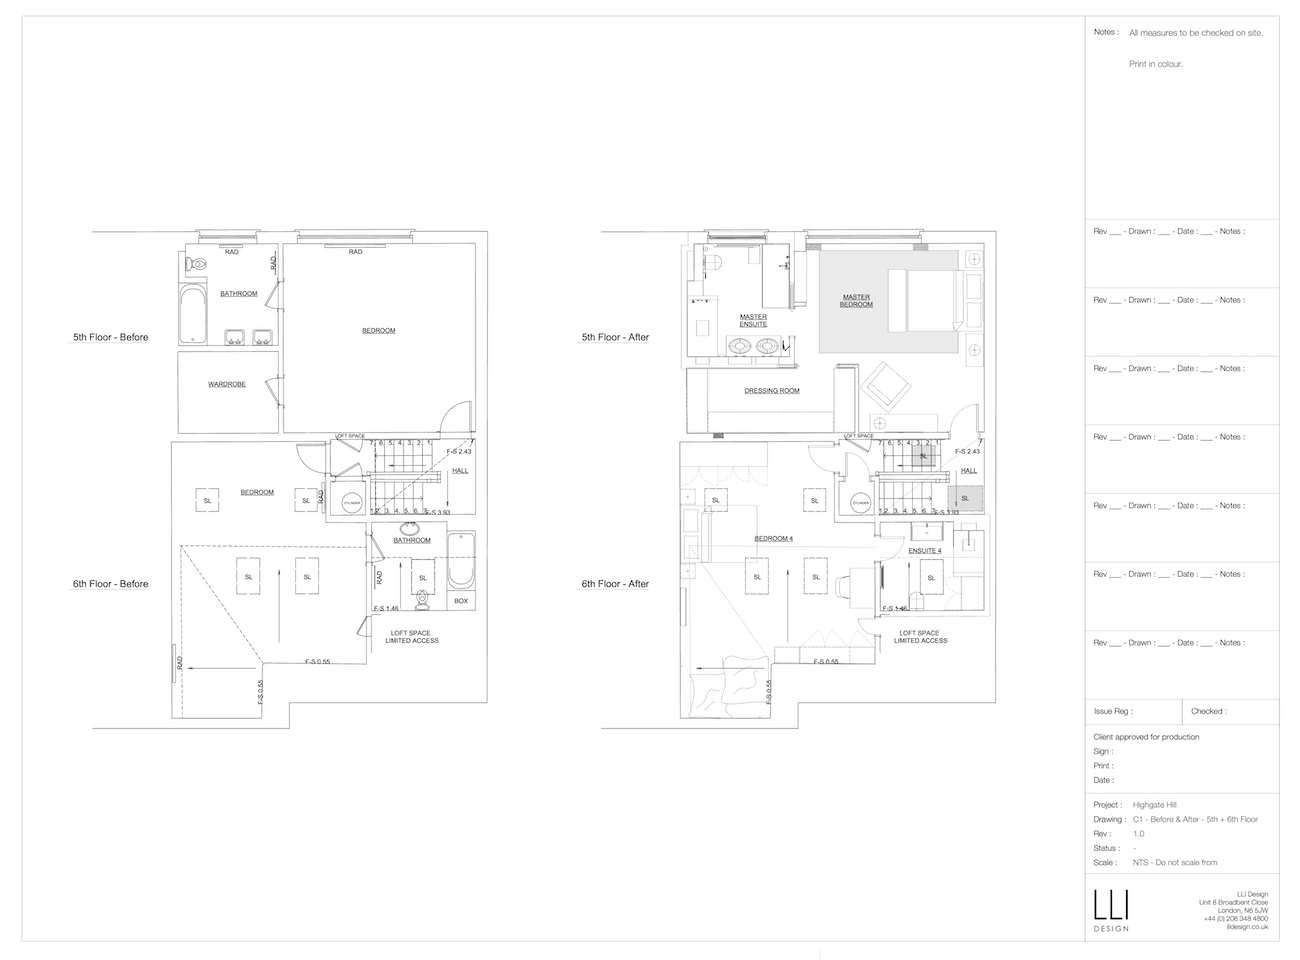 Floor plan for 5th and 6th floors of townhouse before and after a renovation.